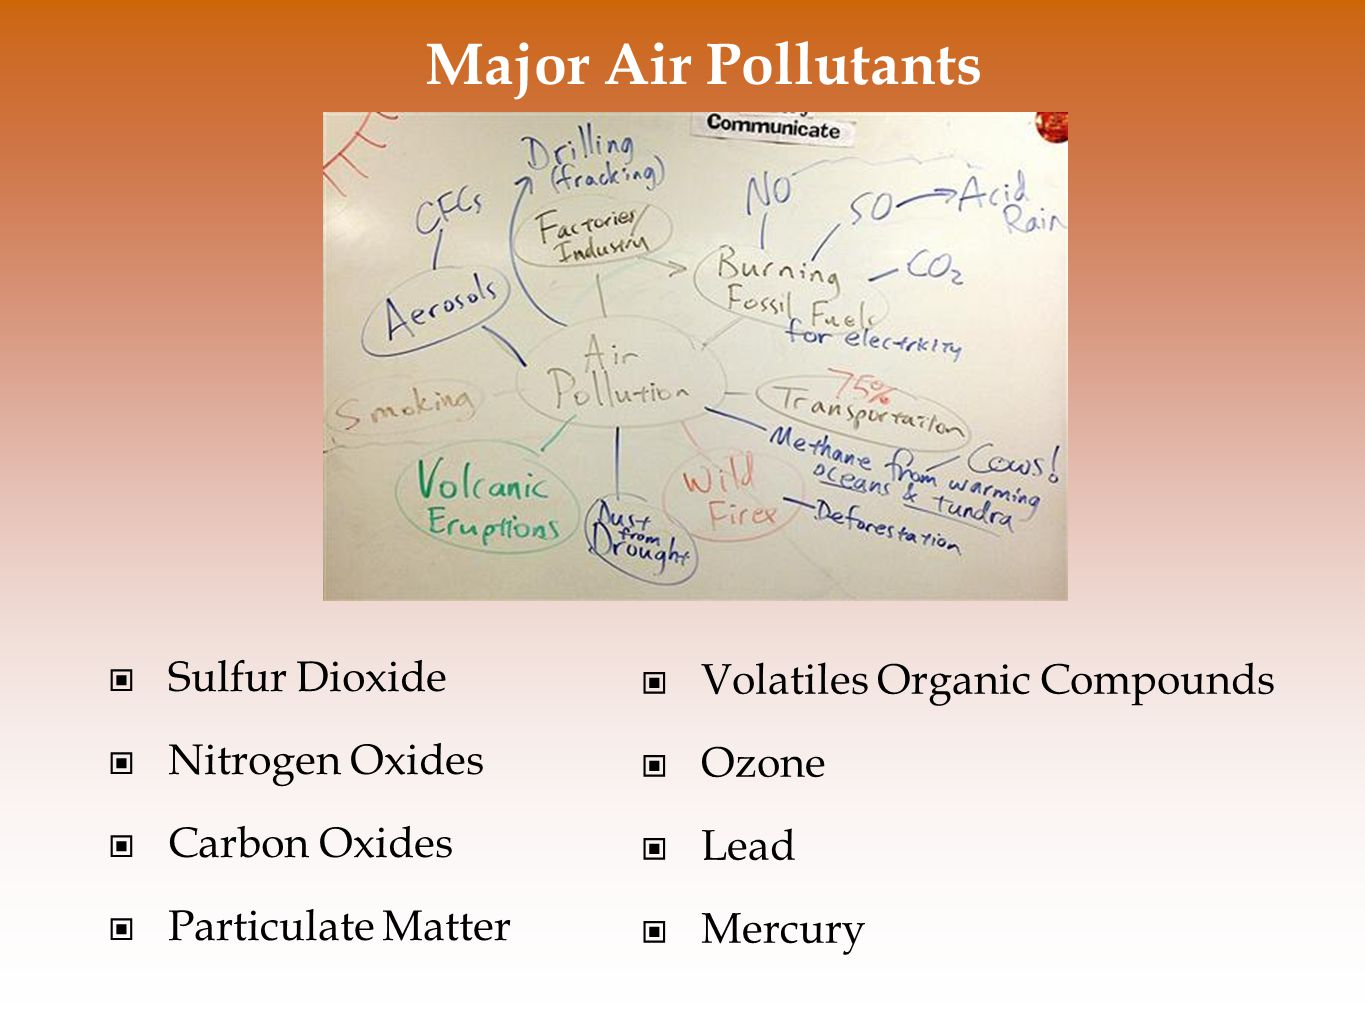 Ways to Prevent Air Pollution Removing sulfur dioxide from coal by fluidized bed combustion Catalytic converters on cars Scrubbers on smoke stacks Baghouse filters Electrostatic precipitators